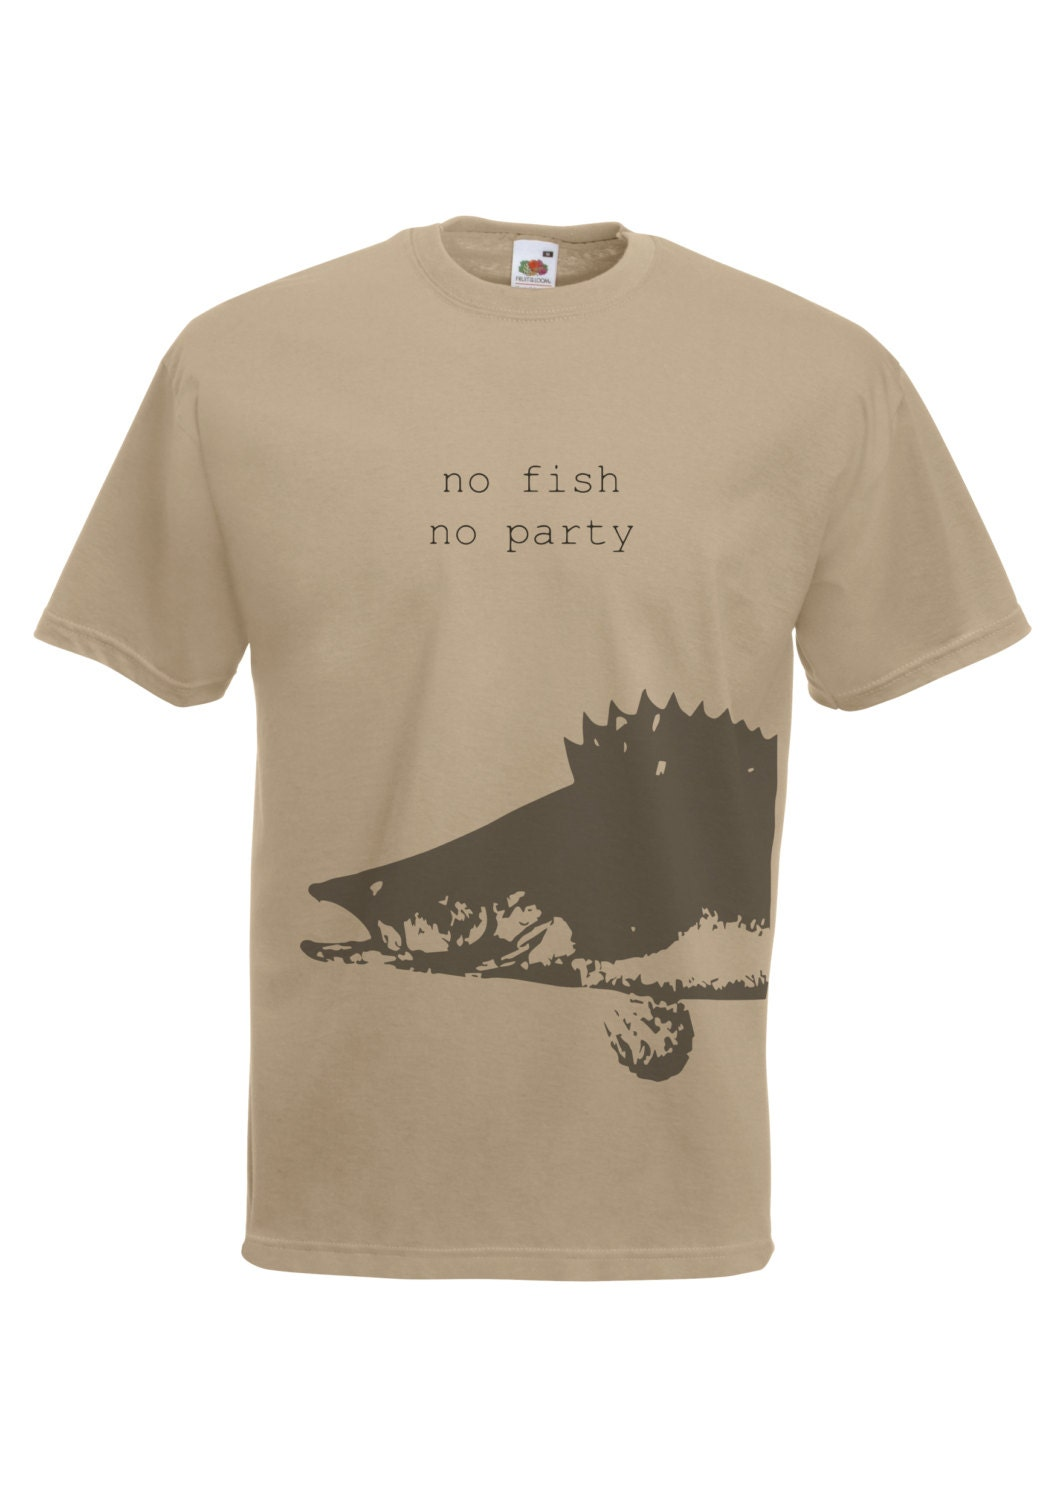 Designs For Fishing Shirts